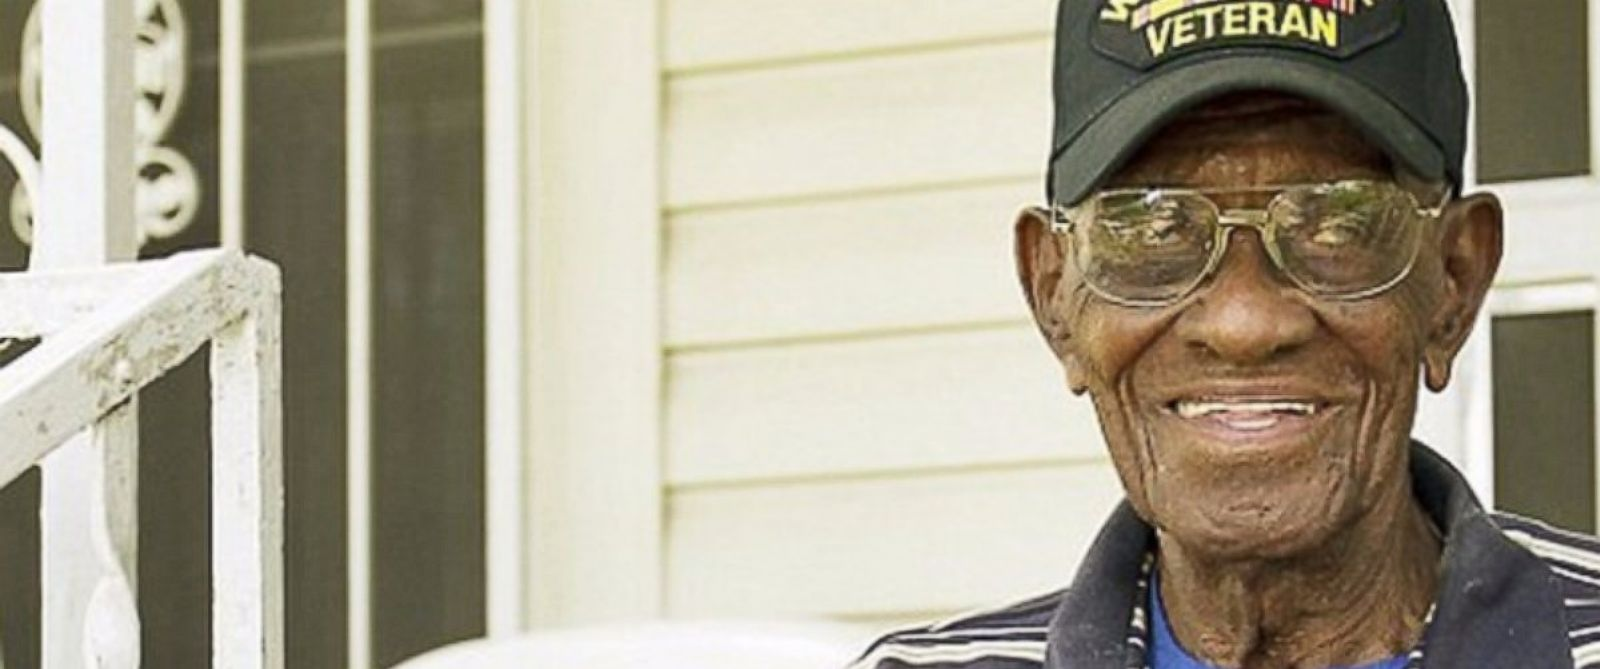 PHOTO: A fundraising campaign has raised $117,000 and counting to help Richard Overton, a 110-year-old World War II veteran, stay in his Austin, Texas, home.